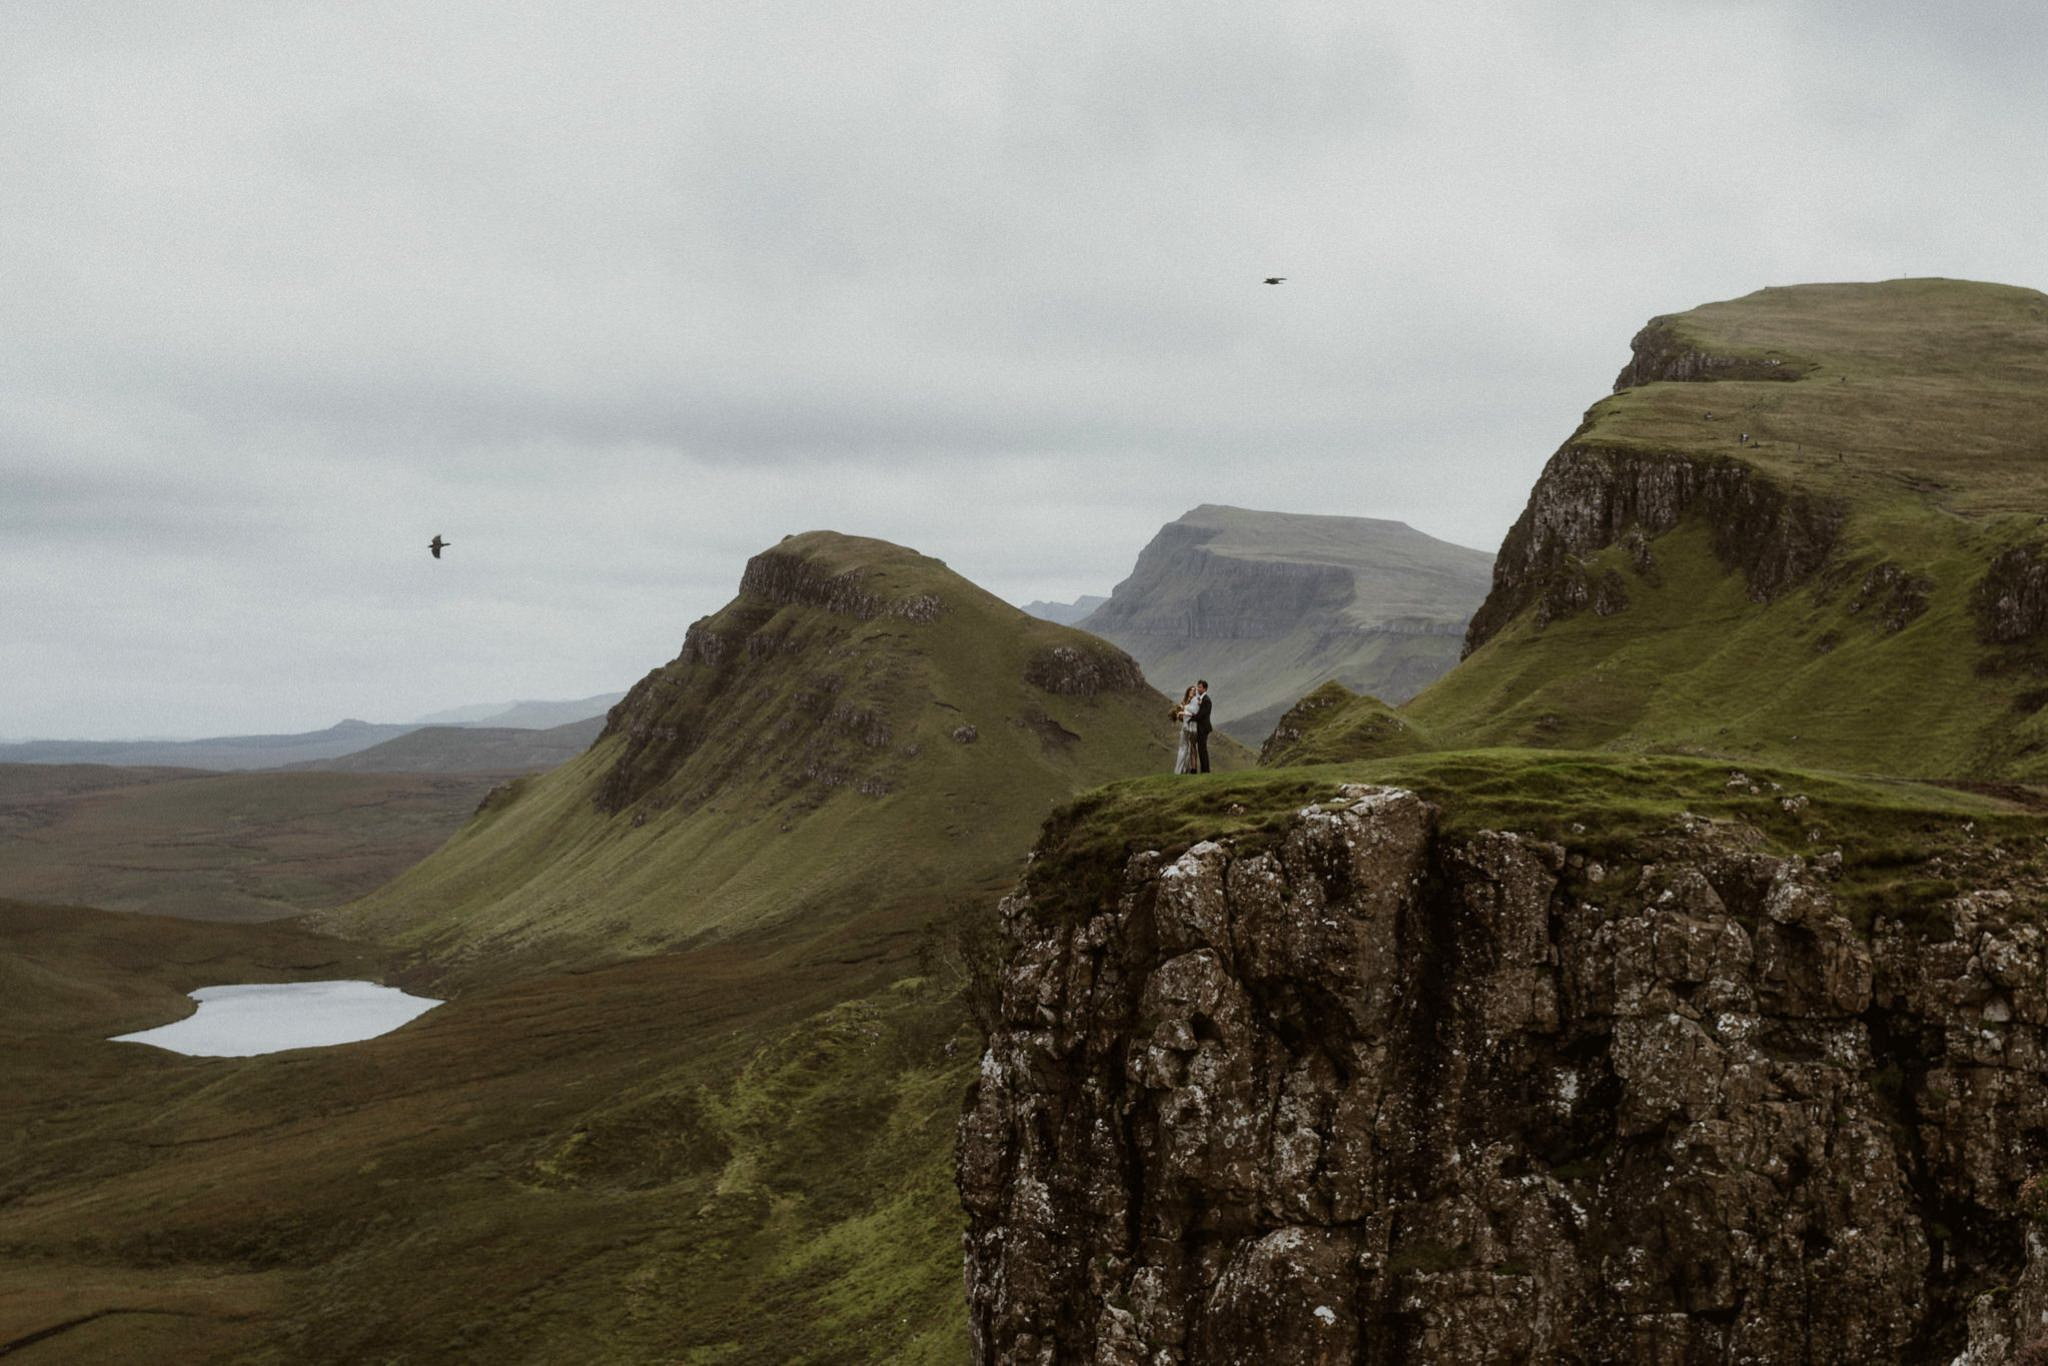 A couple on a headland near the Quiraing on the Isle of Skye